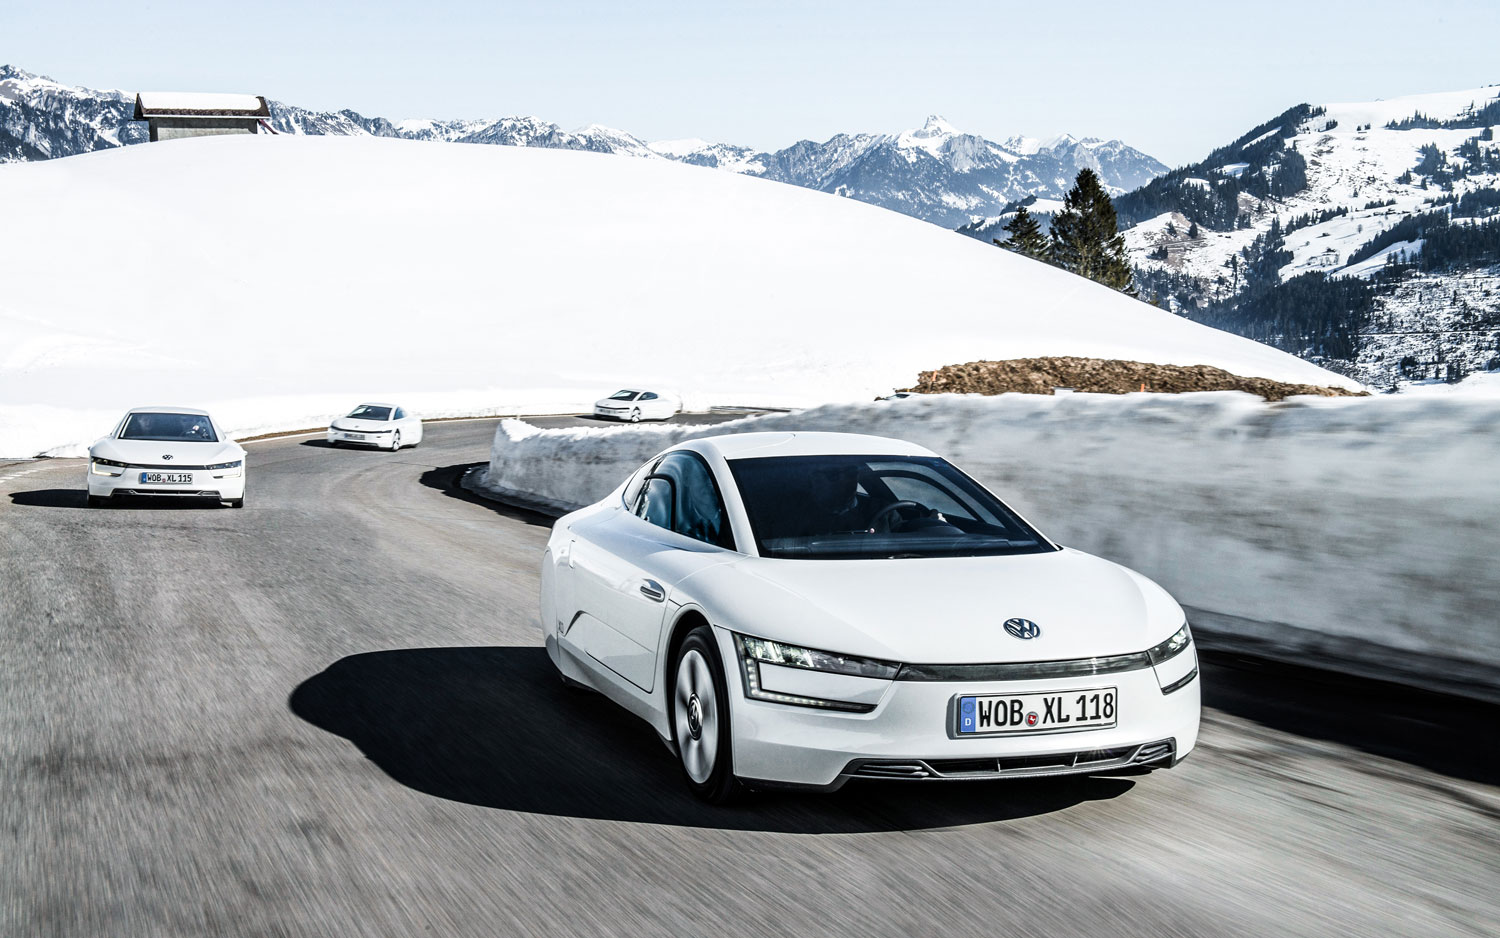 2014 Volkswagen XL1 Front Right View 21